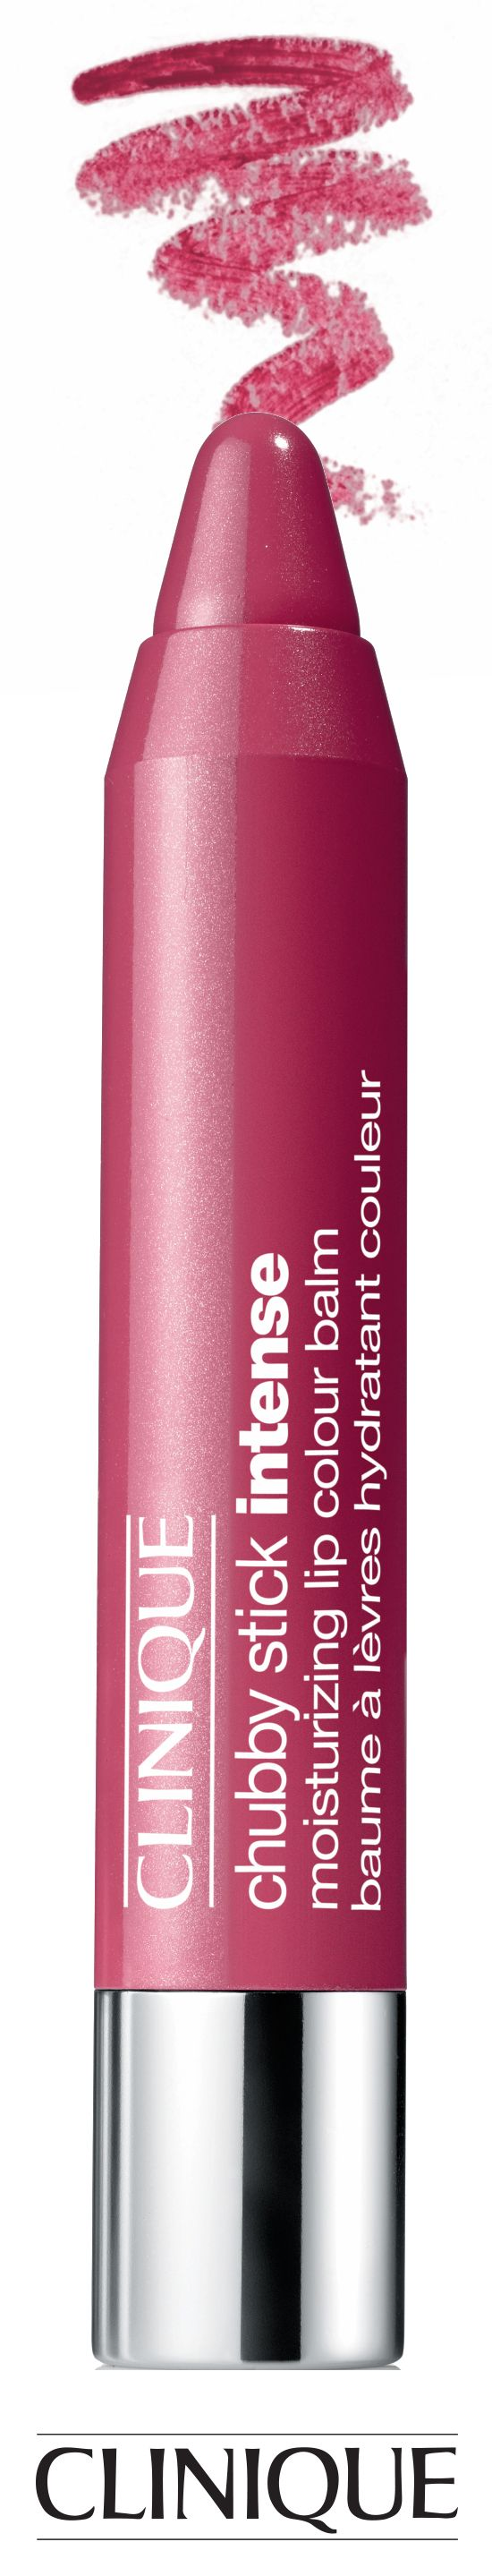 Go bold and bright with Clinique Chubby Stick Intense in Roomiest Rose.